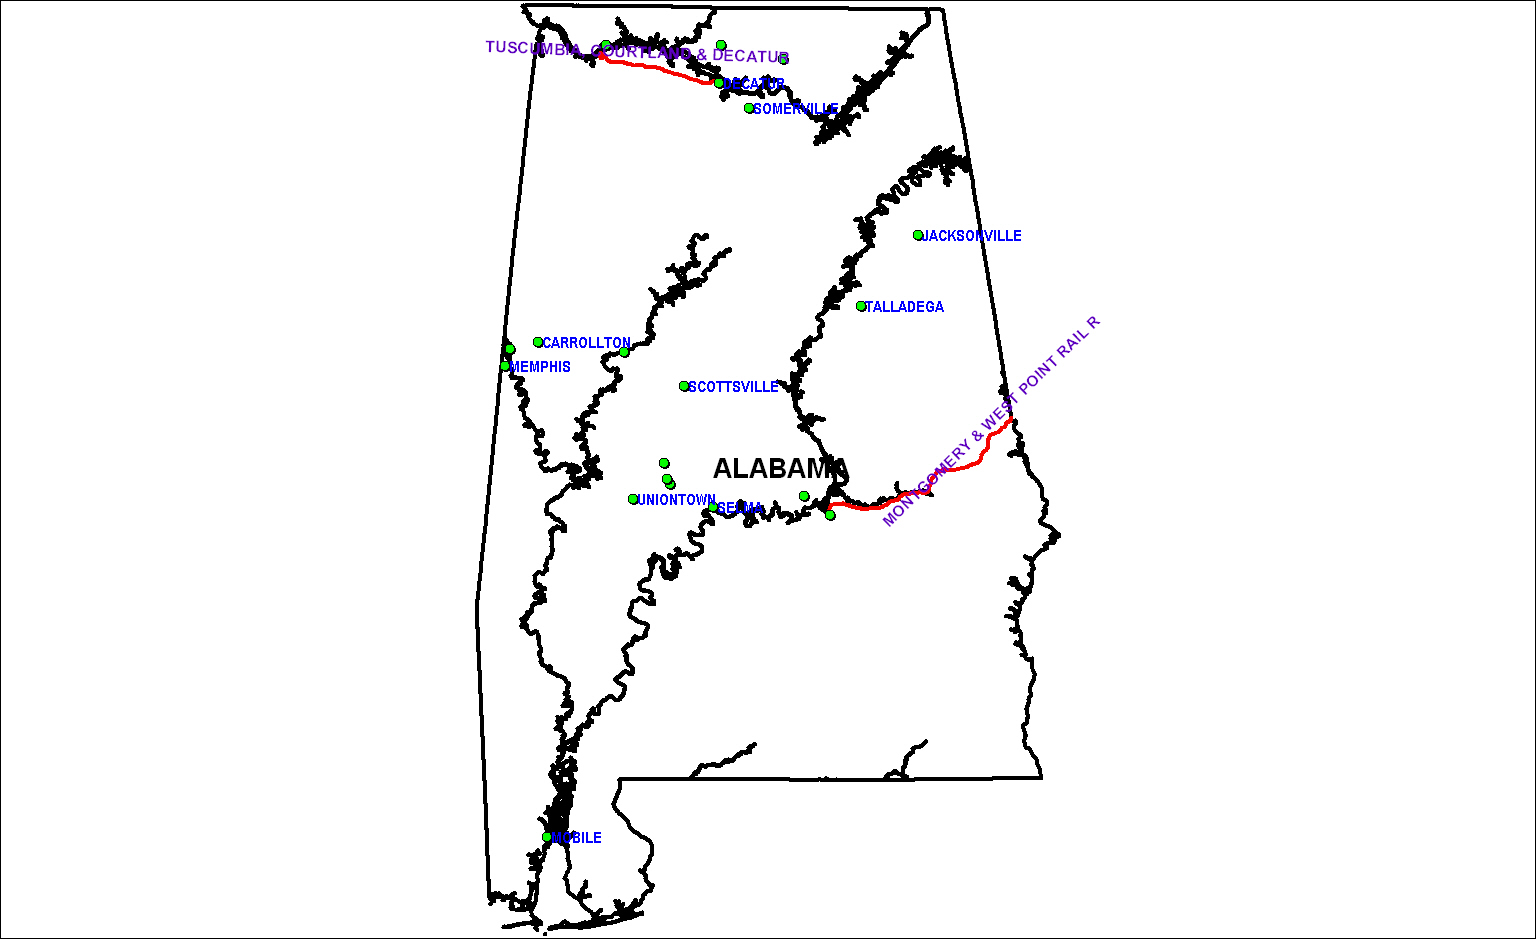 Alabama Railroads in 1850 Map